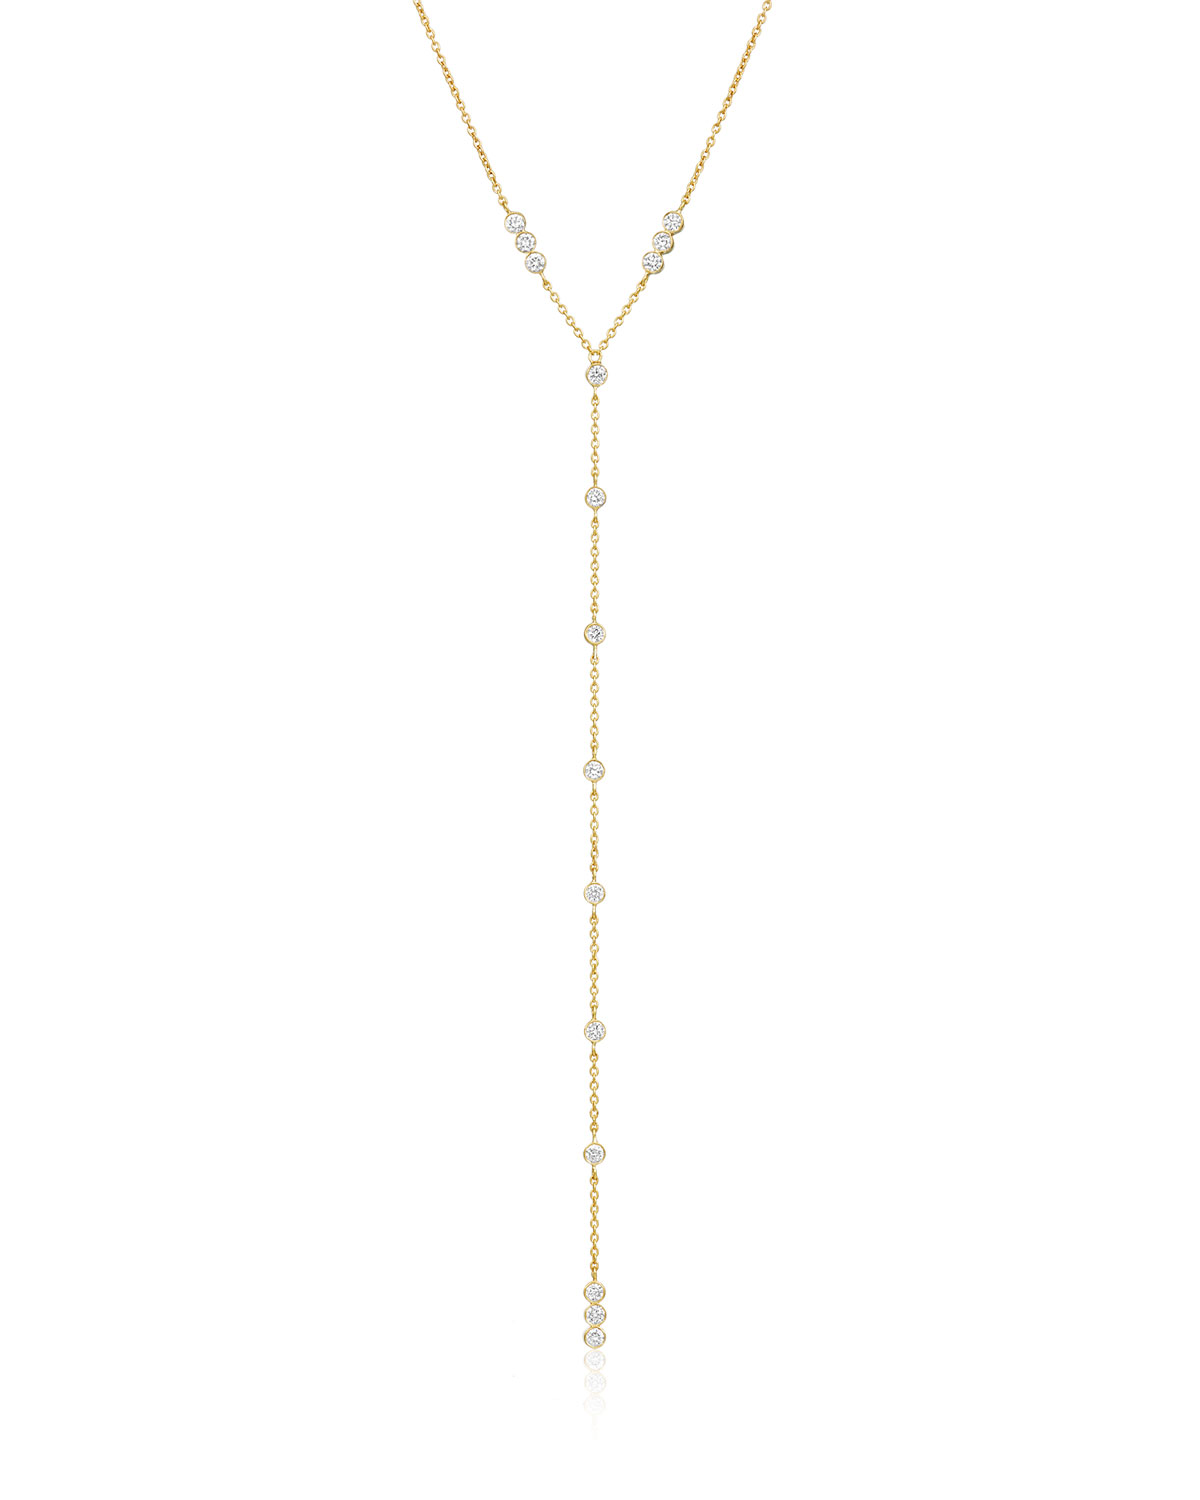 LEGEND AMRAPALI Tarakini Diamond Y-Drop Necklace